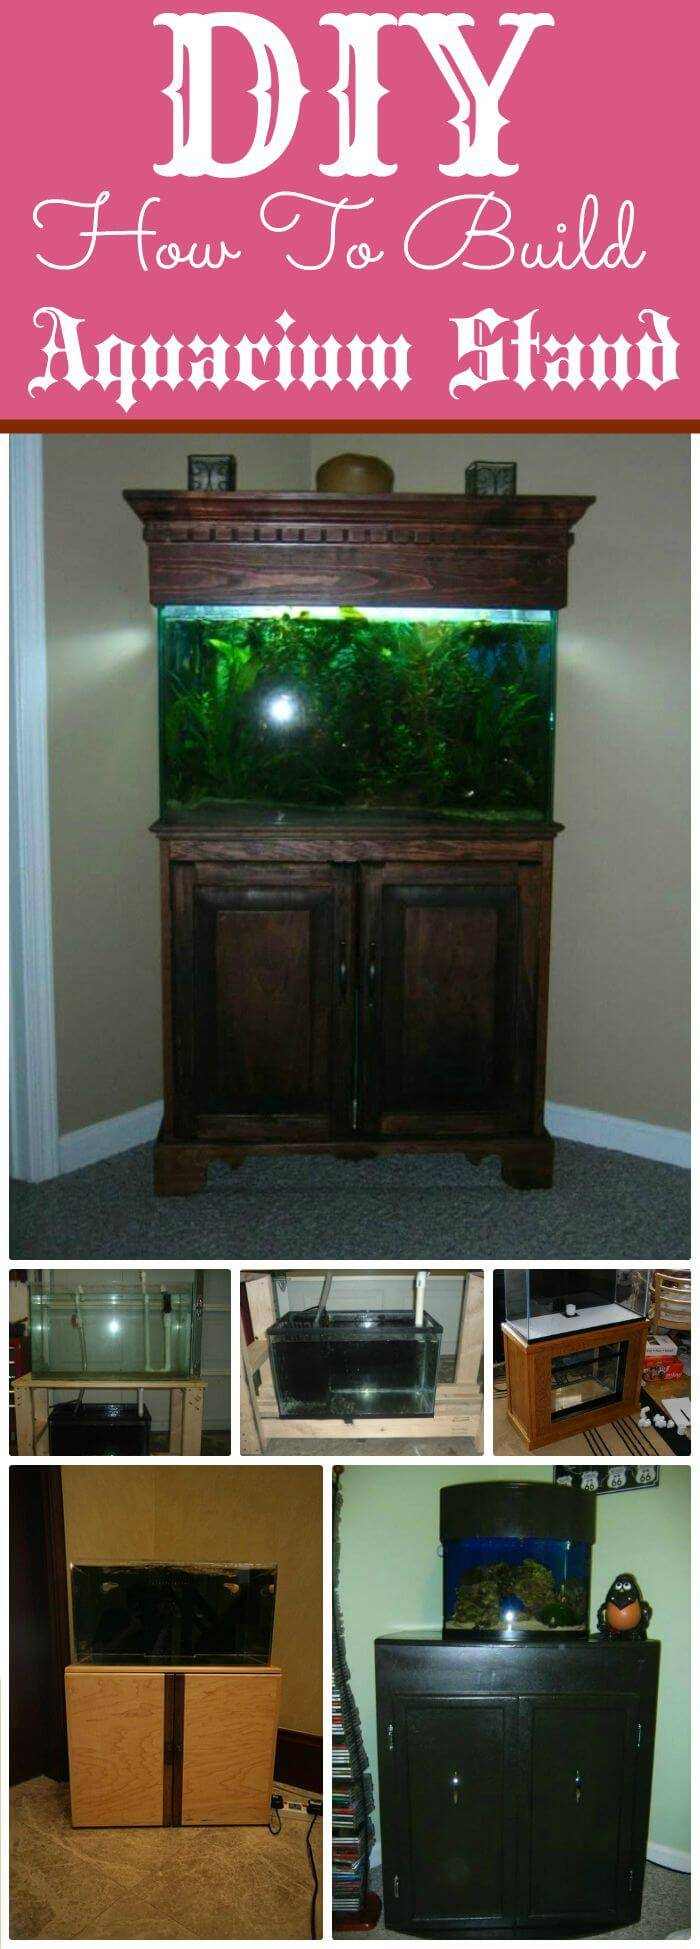 DIY Gorgious Aquarium Stand, Easy diy fish tank stand ideas and projects!